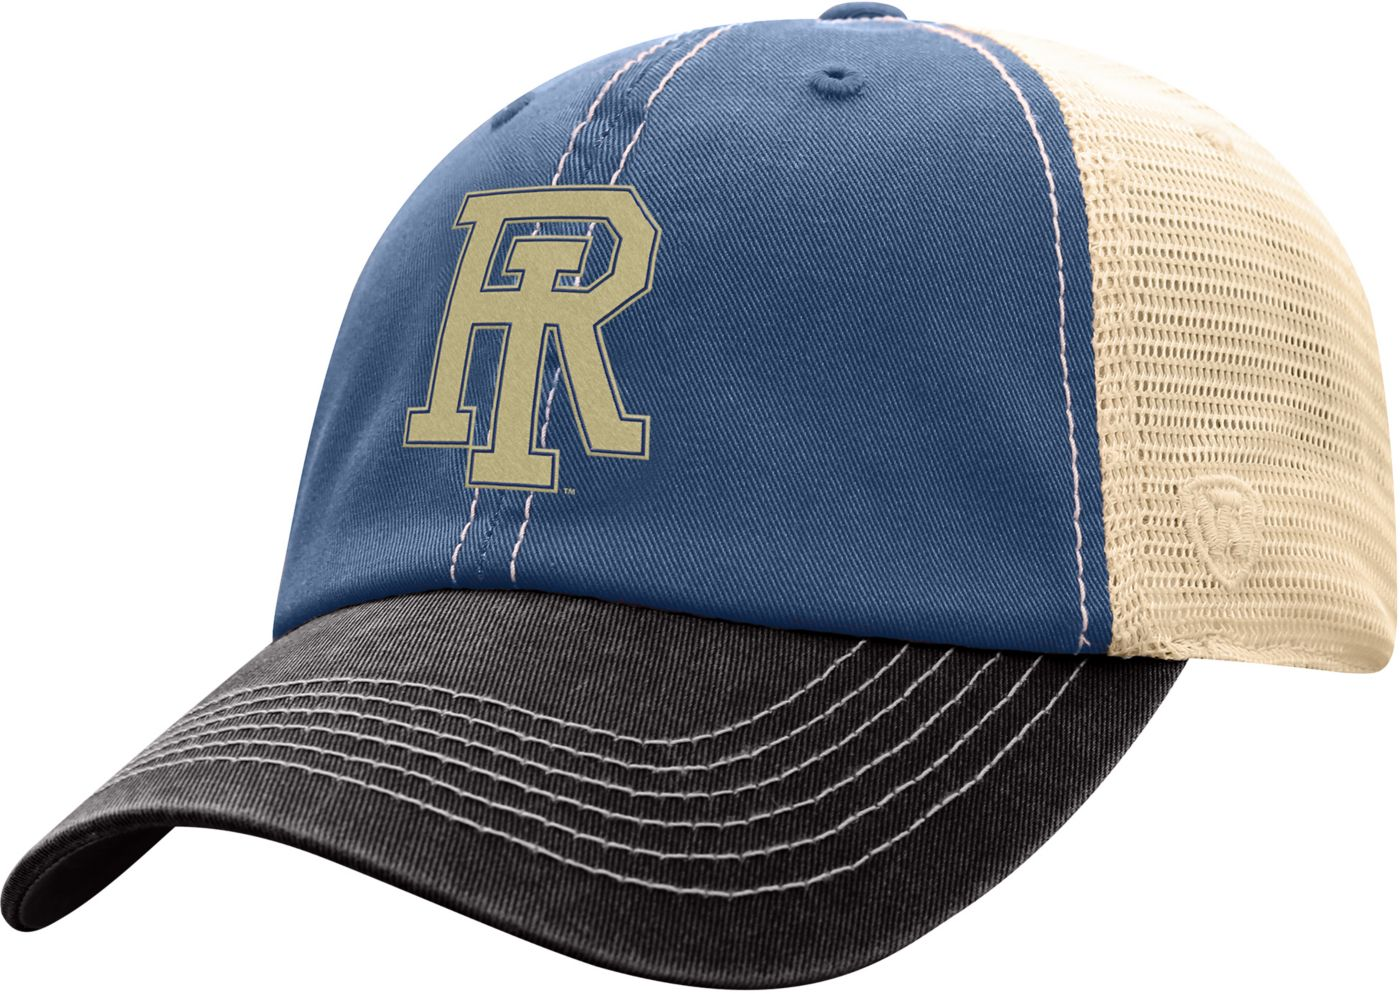 Top of the World Men's Rhode Island Rams Blue/White Off Road Adjustable Hat